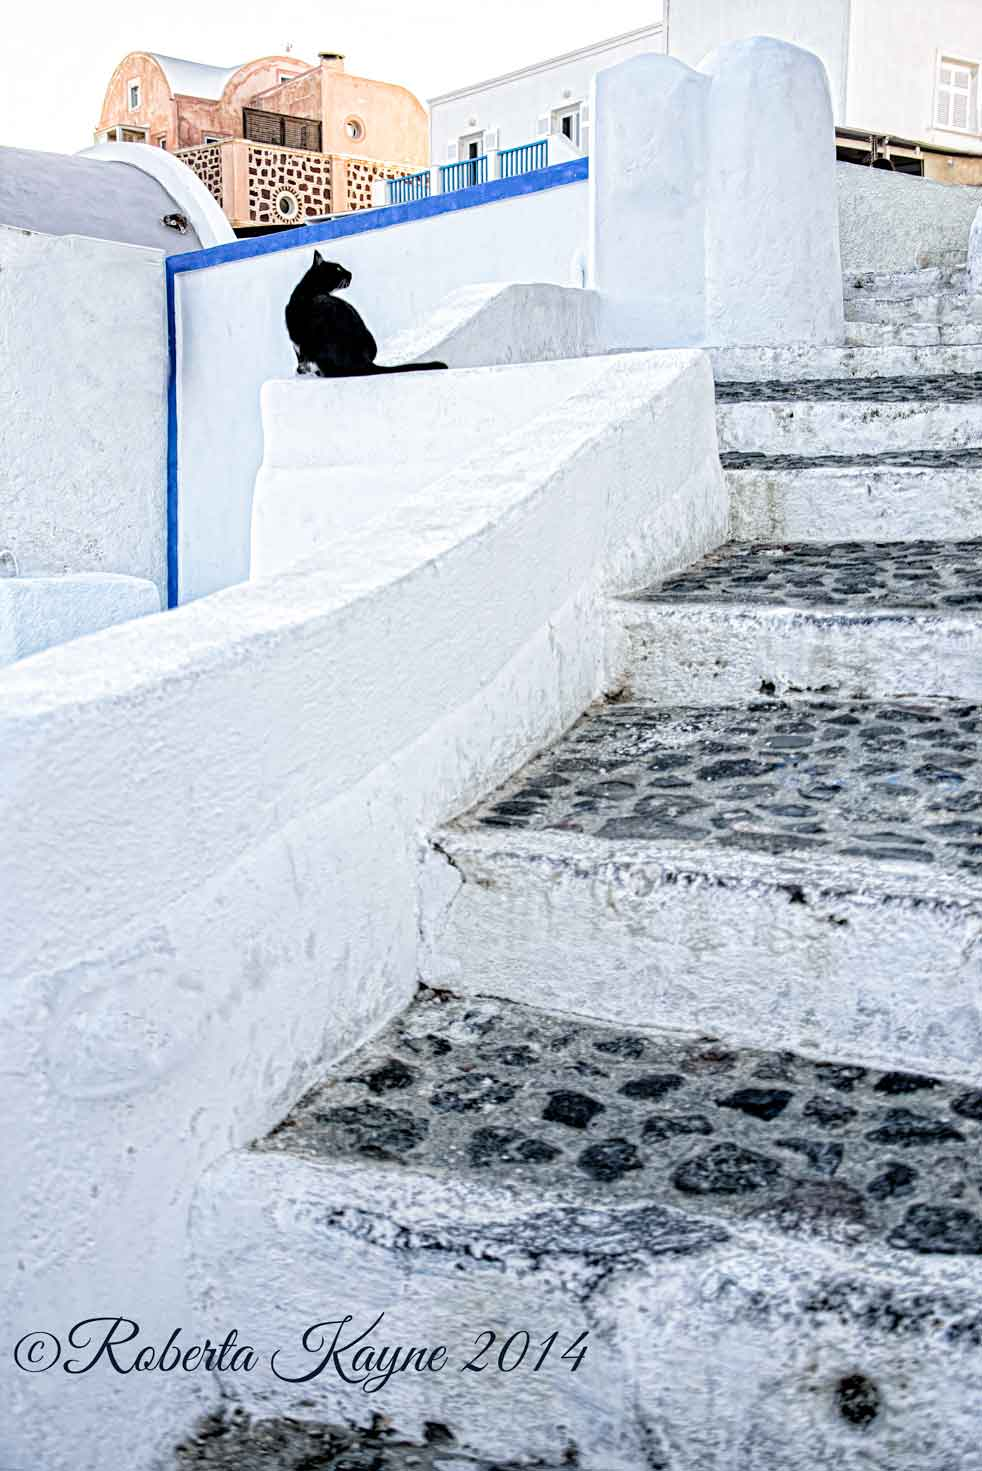 9-13-14-Santorini-2273-cat-on-steps-small-2